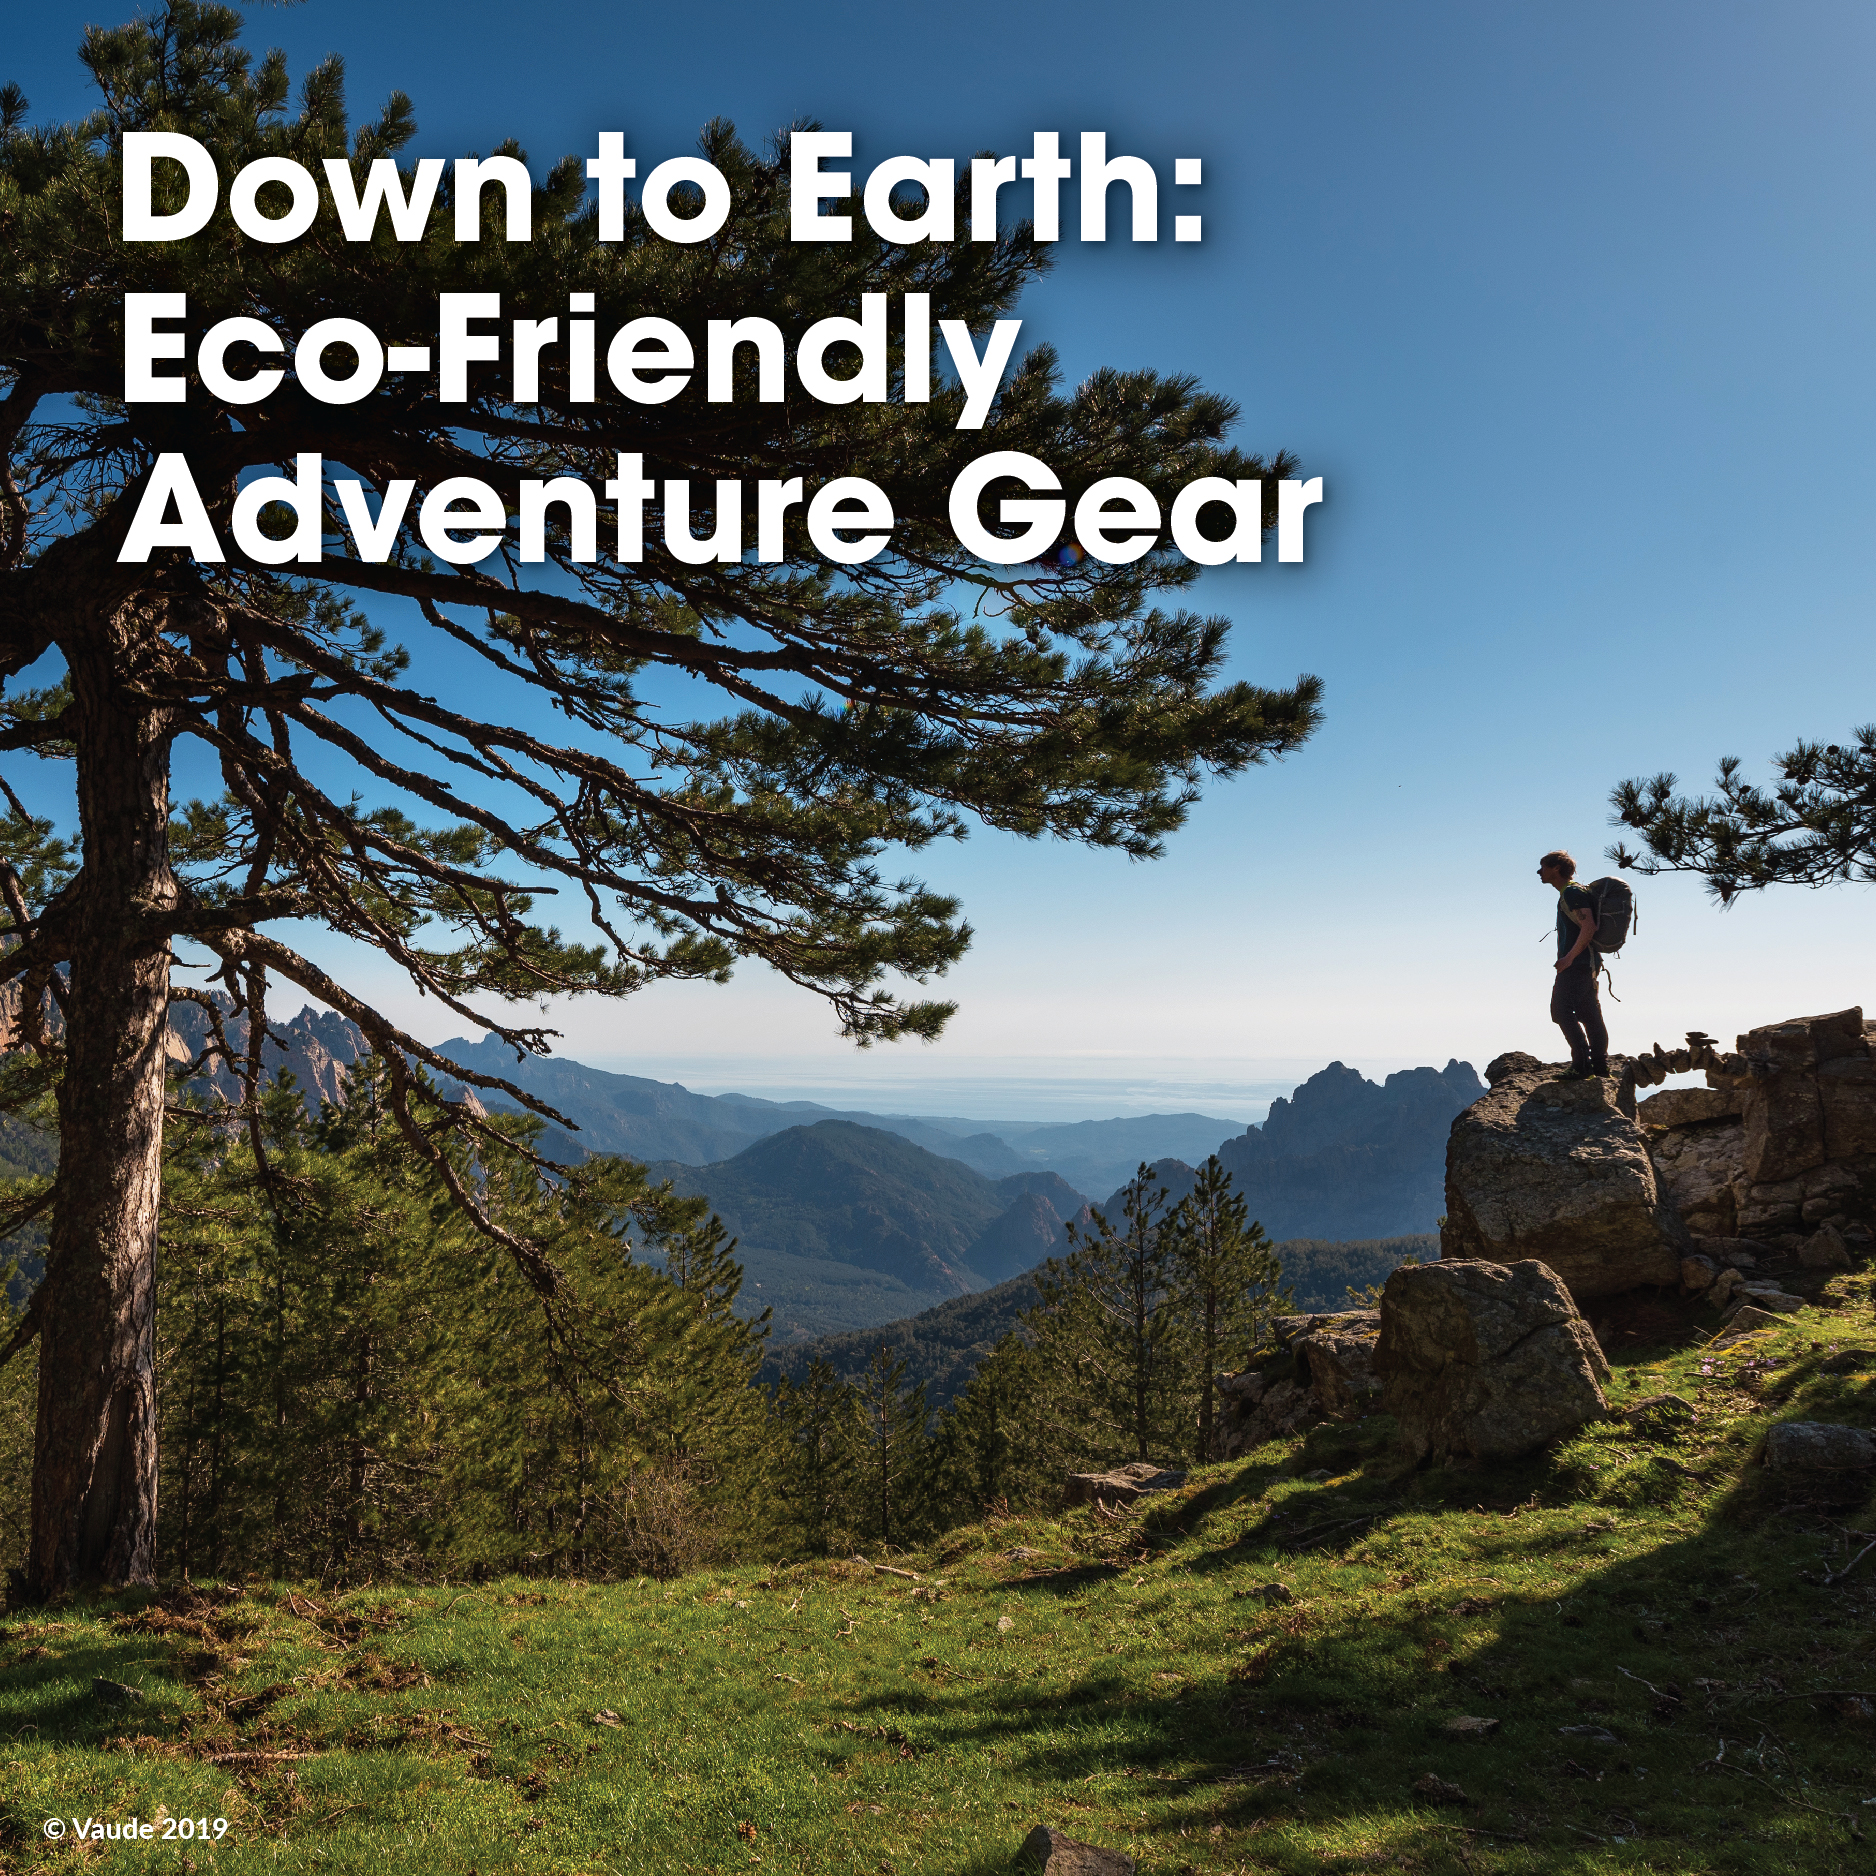 Down to Earth: Eco-Friendly Adventure Gear